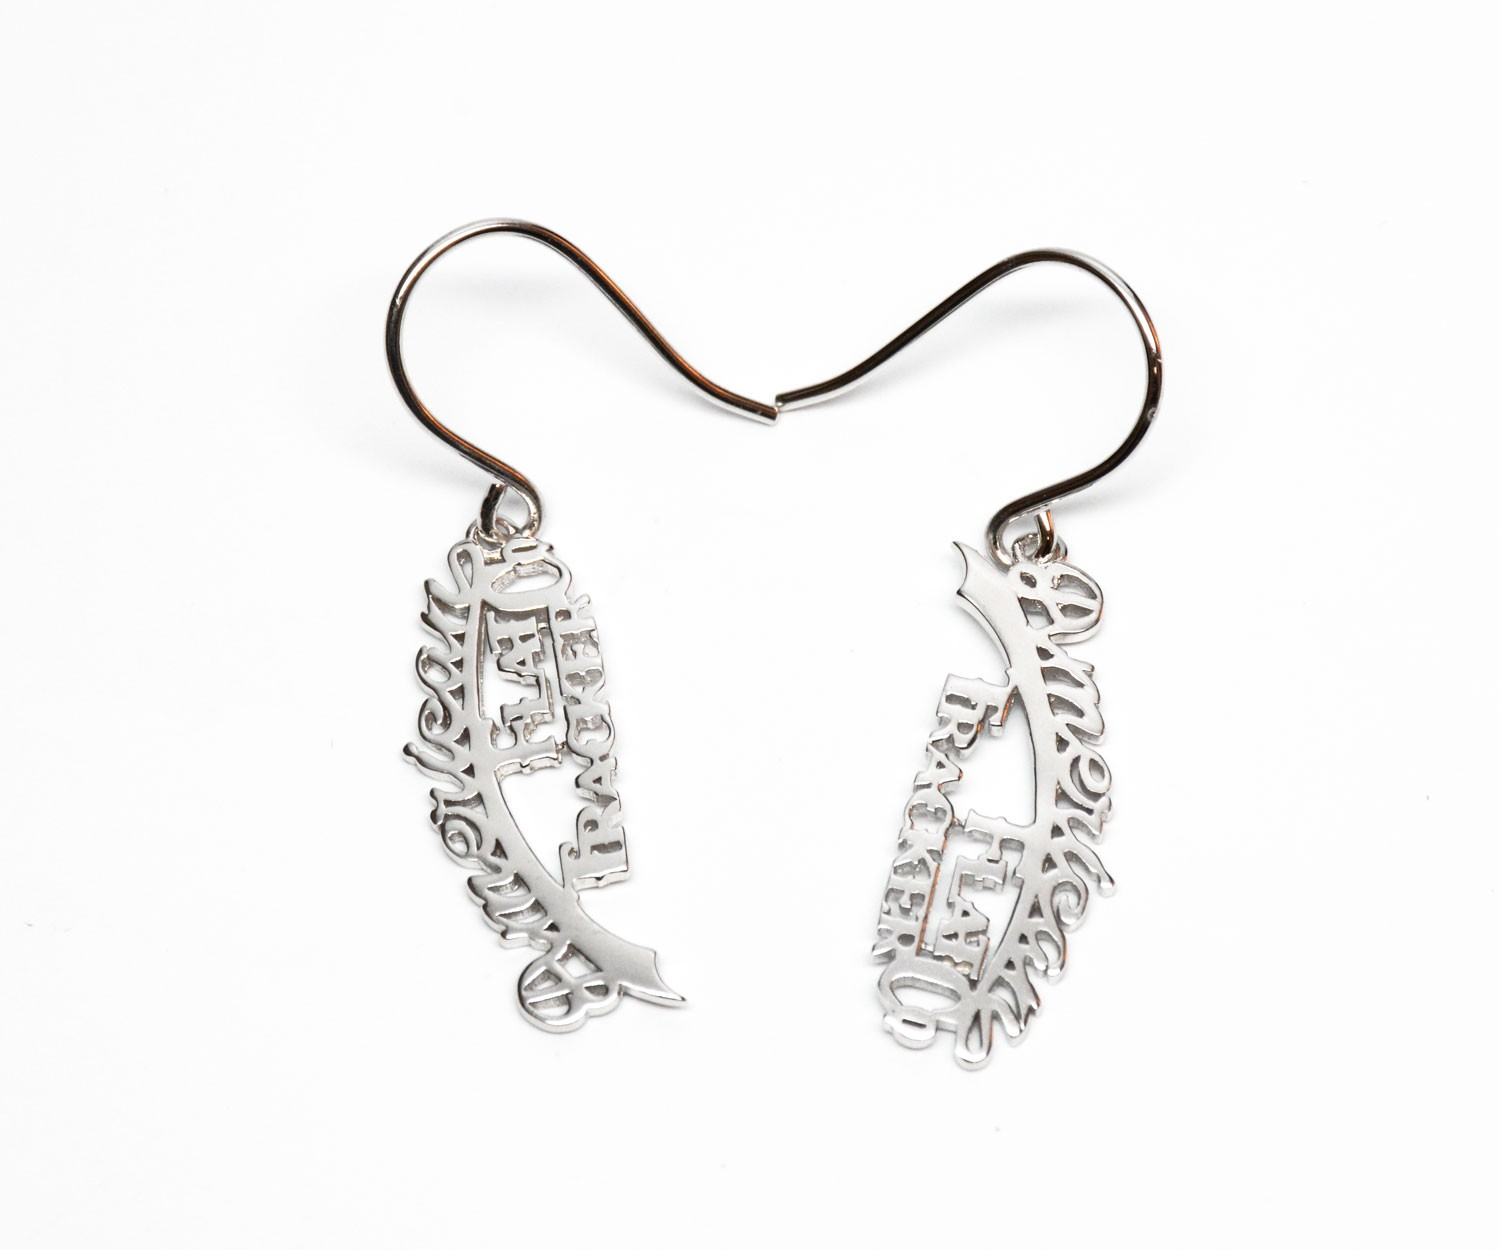 AMERICAN FLAT TRACKER STERLING SILVER EARRINGS